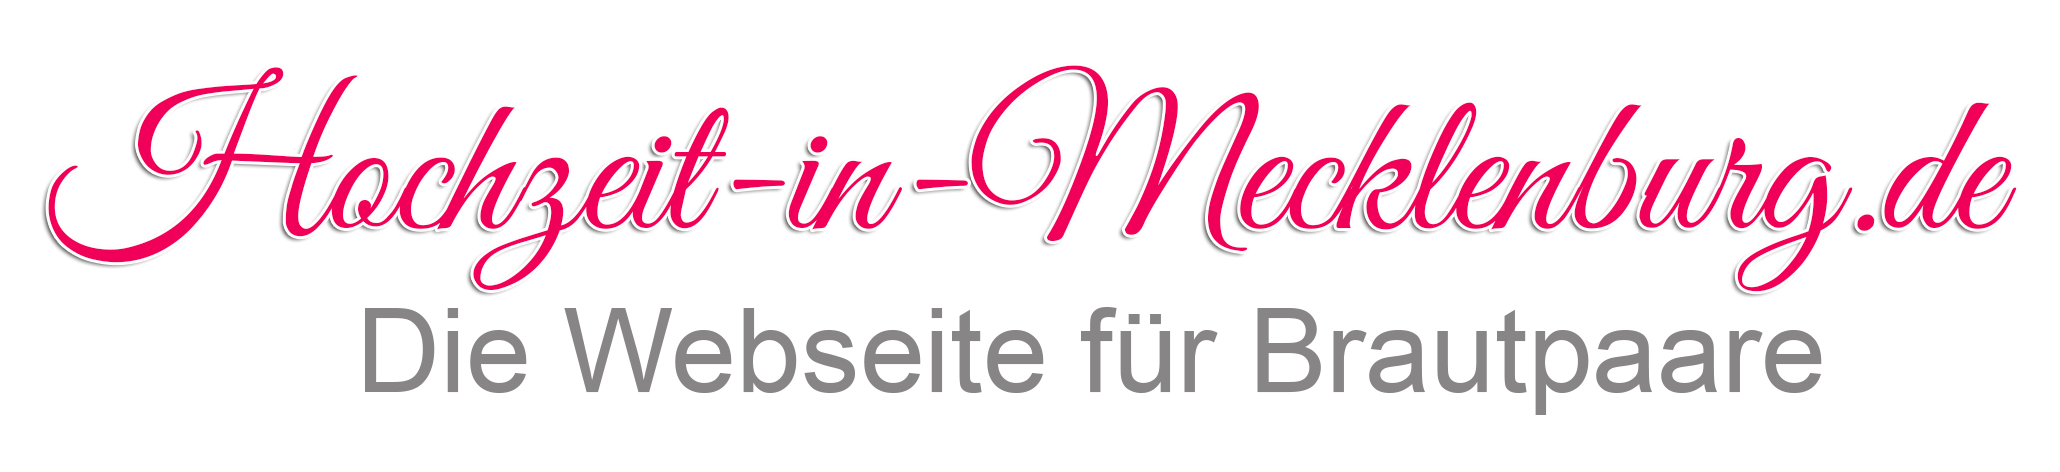 Logo von wedding.com.de